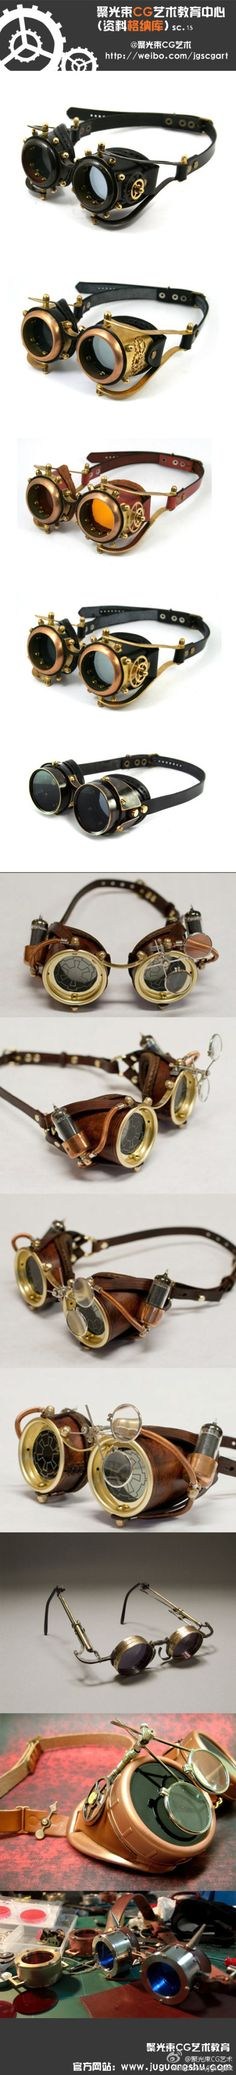 Examples of steampunk goggles and decorations Steampunk Accessoires, Mode Steampunk, Style Steampunk, Steampunk Gadgets, Steampunk Goggles, Steampunk Cosplay, Steampunk Design, Steampunk Wedding, Victorian Steampunk